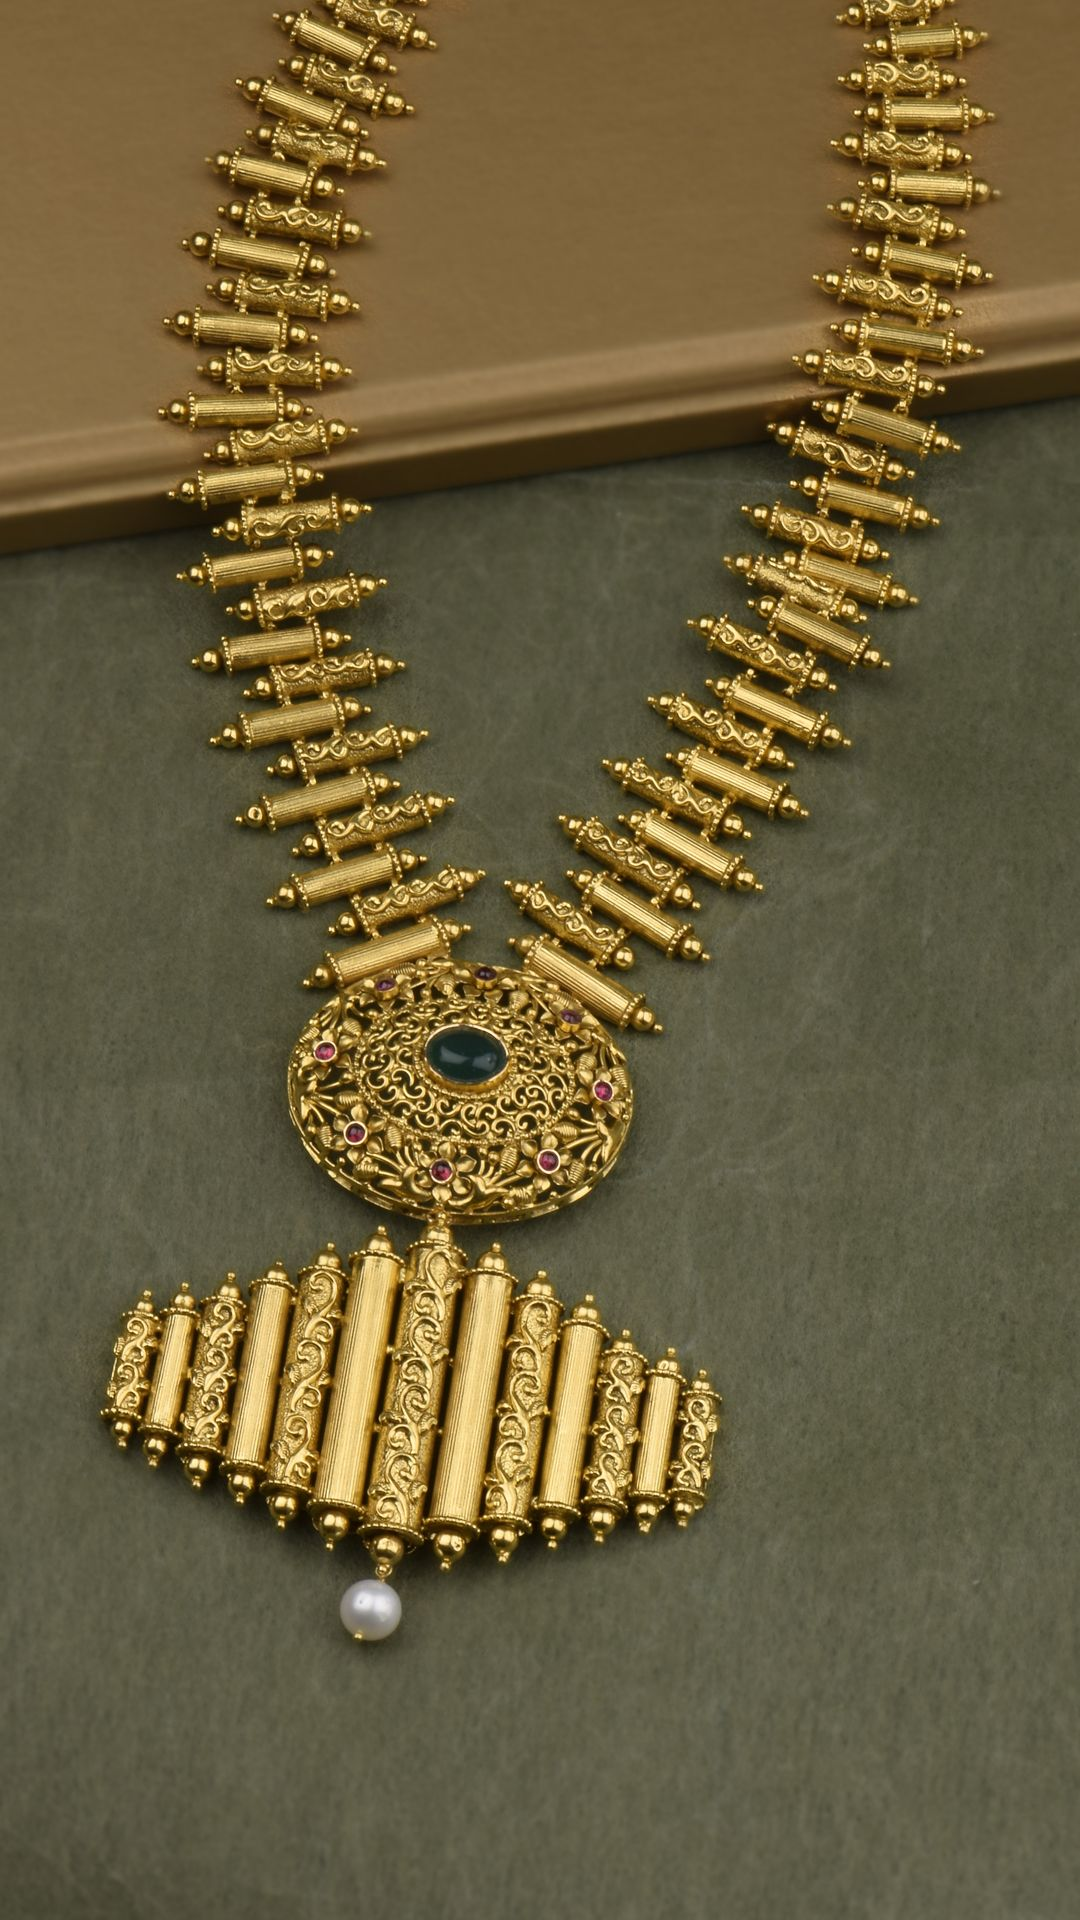 Cylindrical gold beads decked with ornamented scrolls adorn the modern necklace